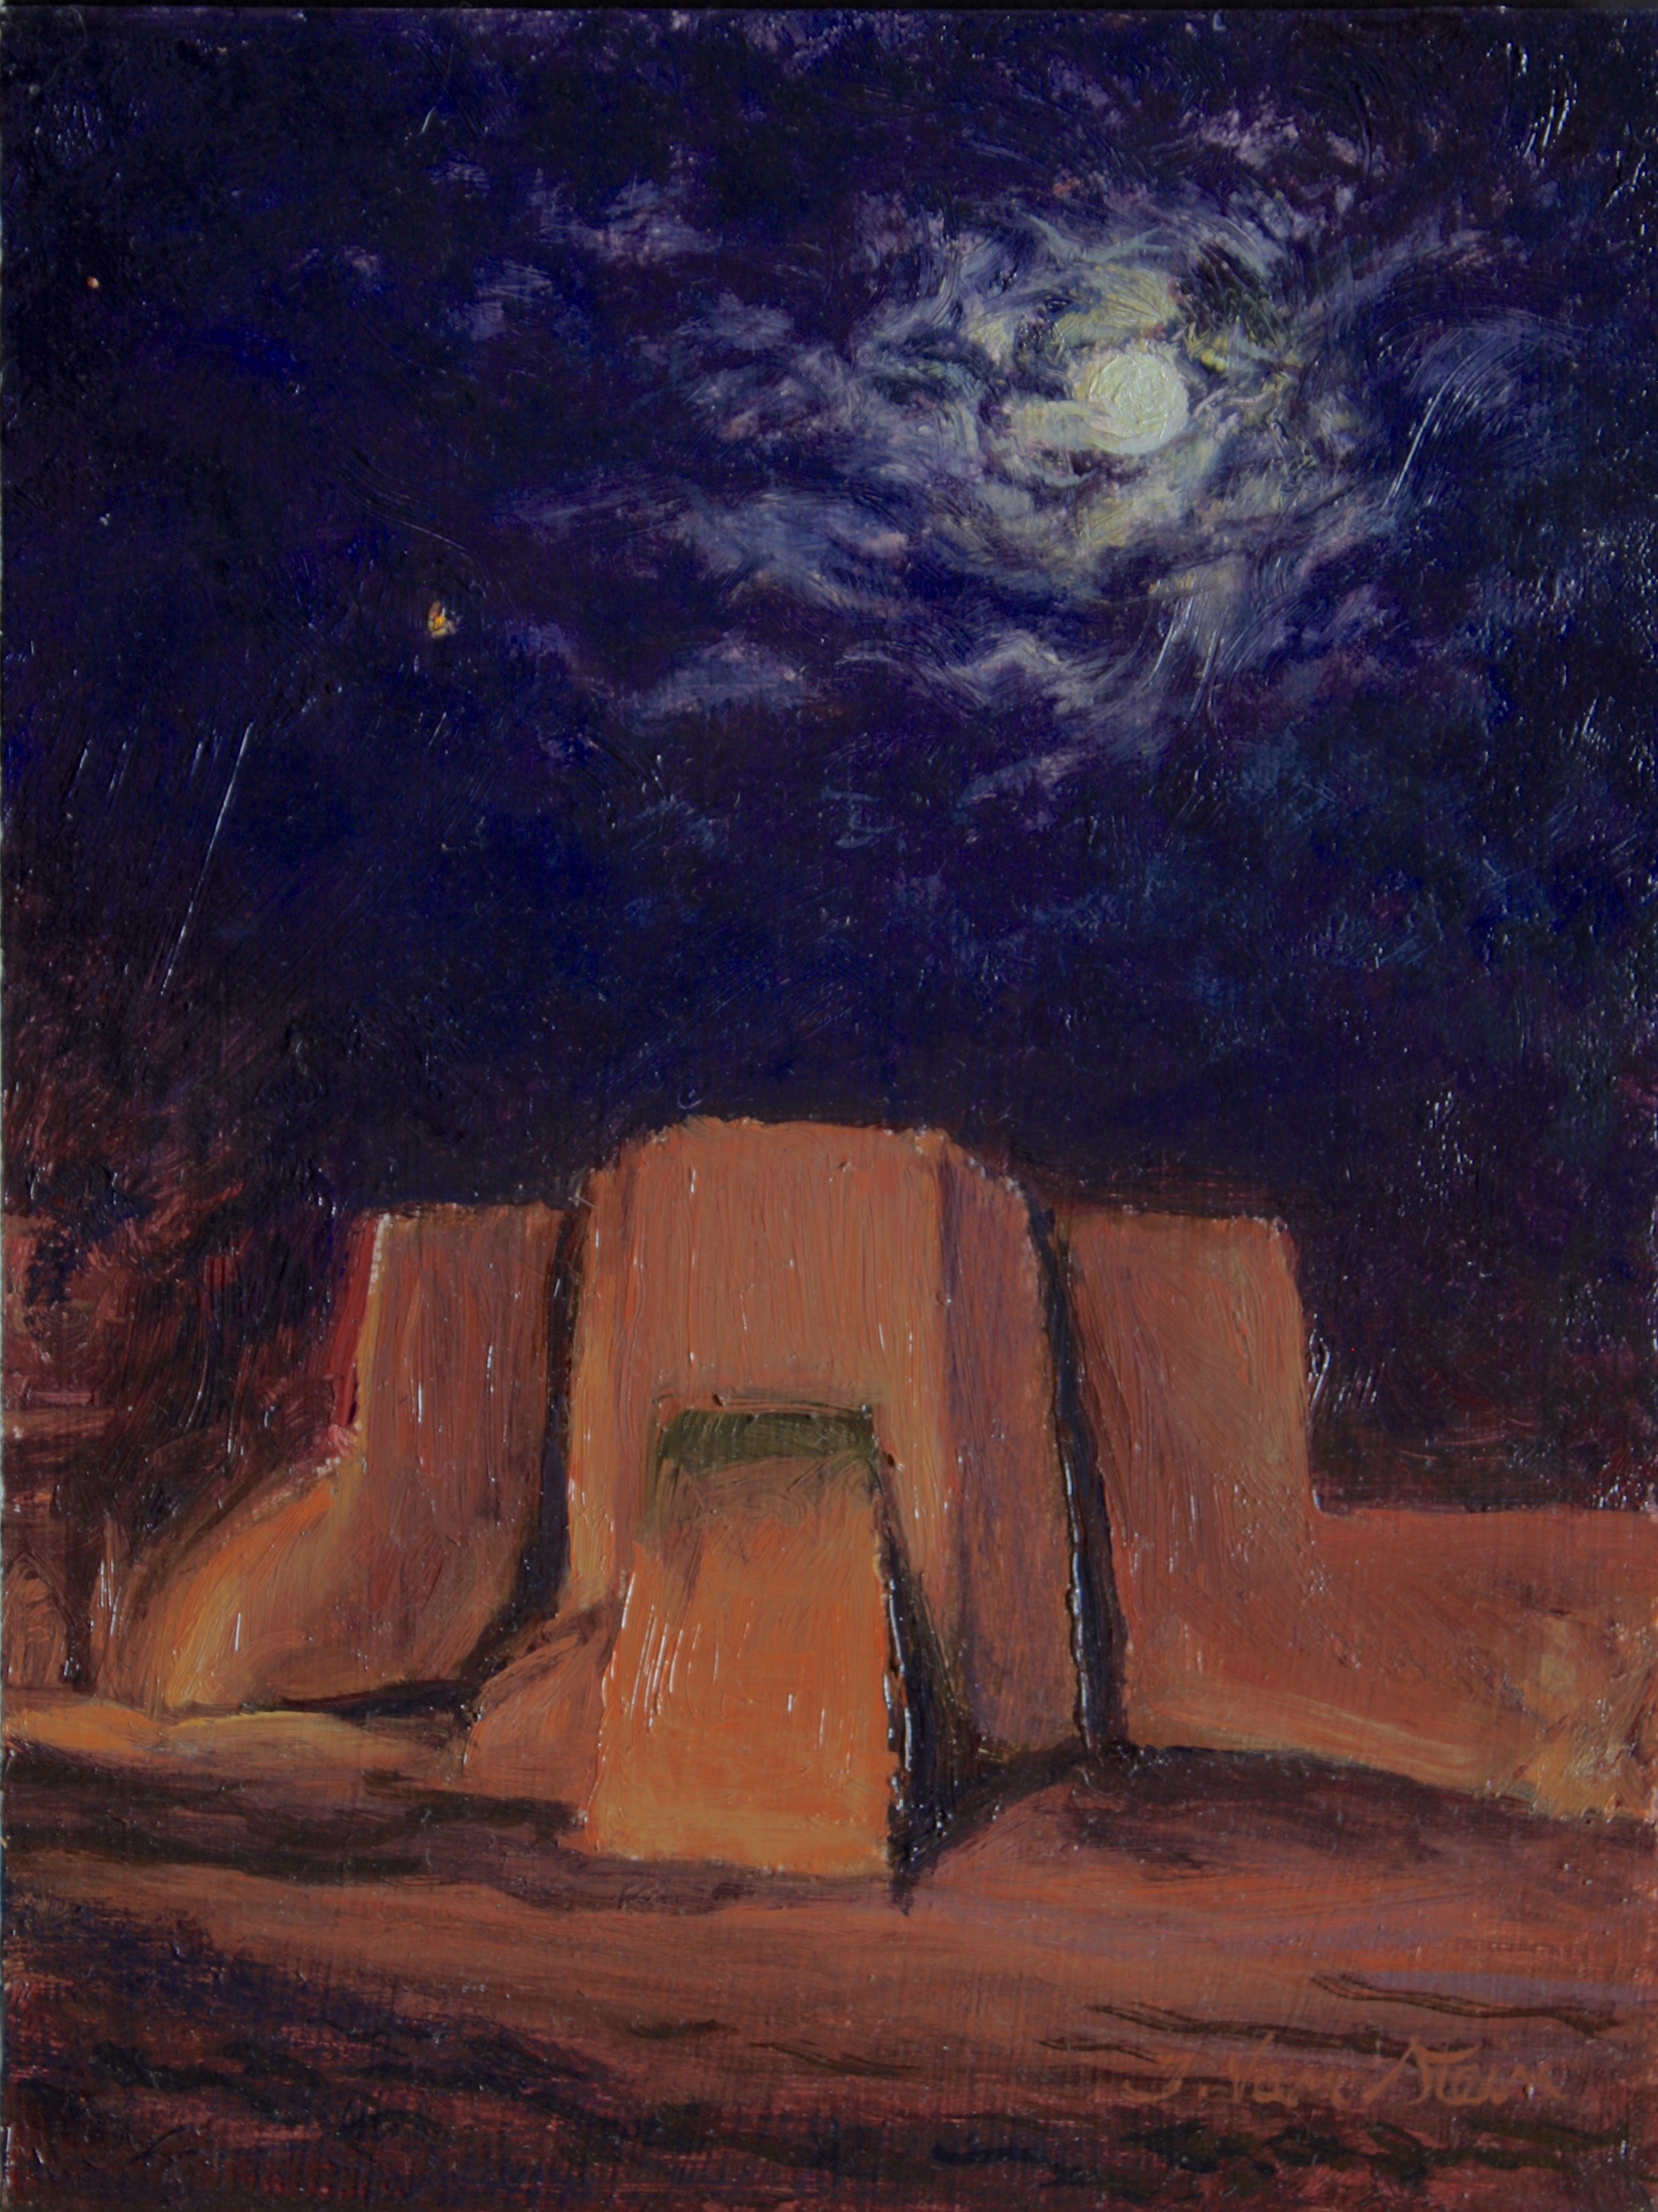 Moon Over Mission San Francisco Assasi, Taos NM, 12x9, oil, 2018